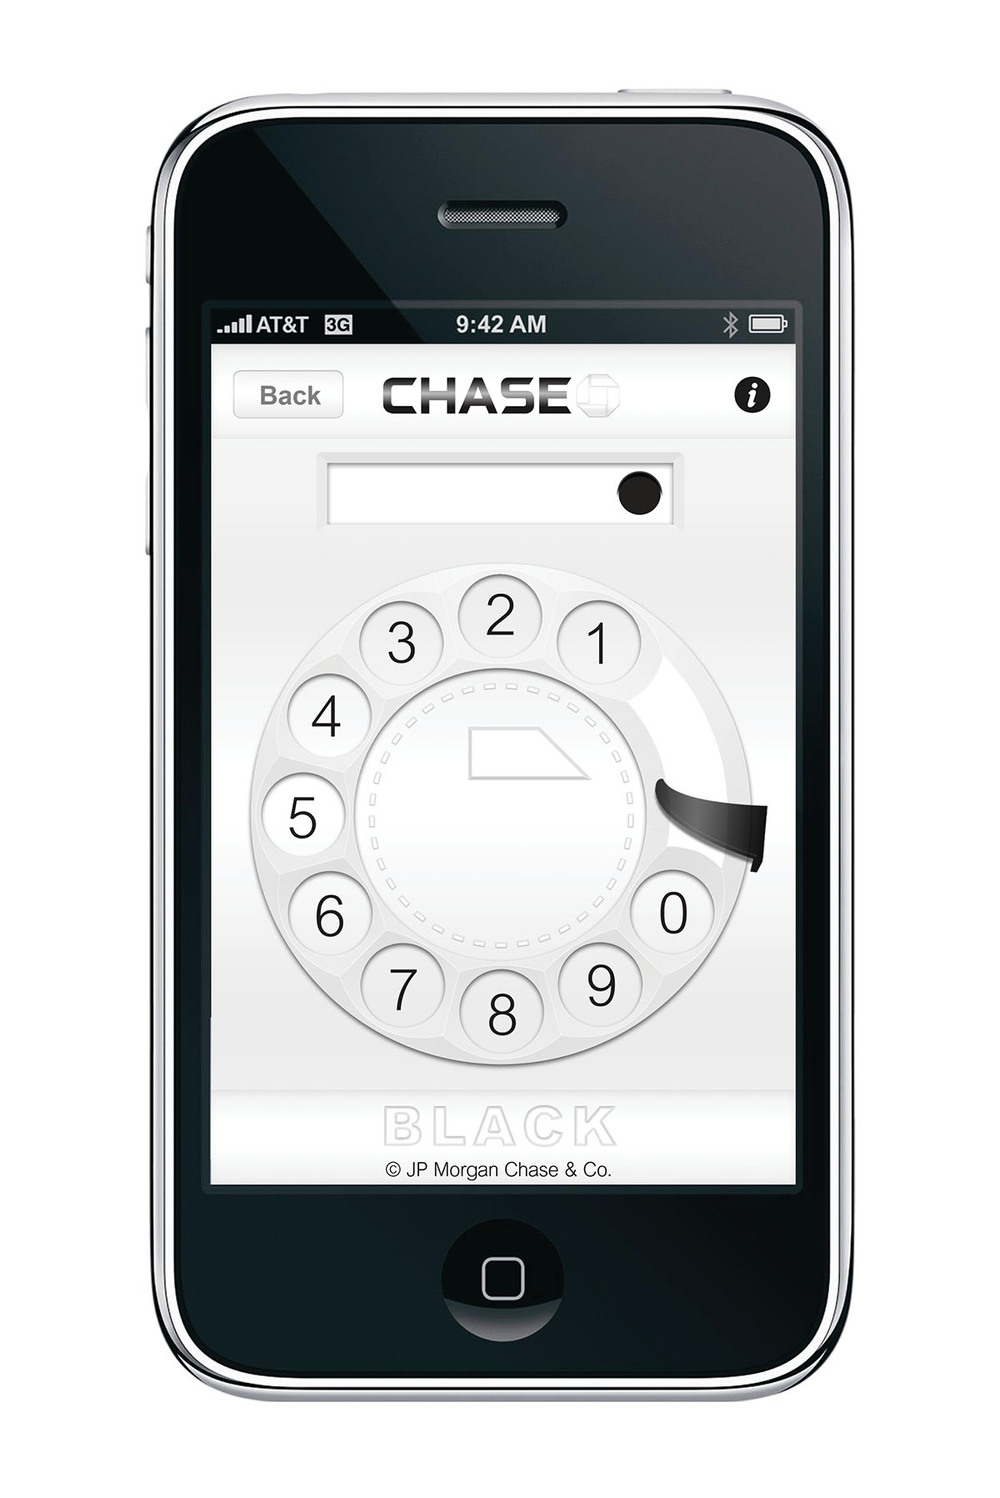 chase_black_login2.jpg